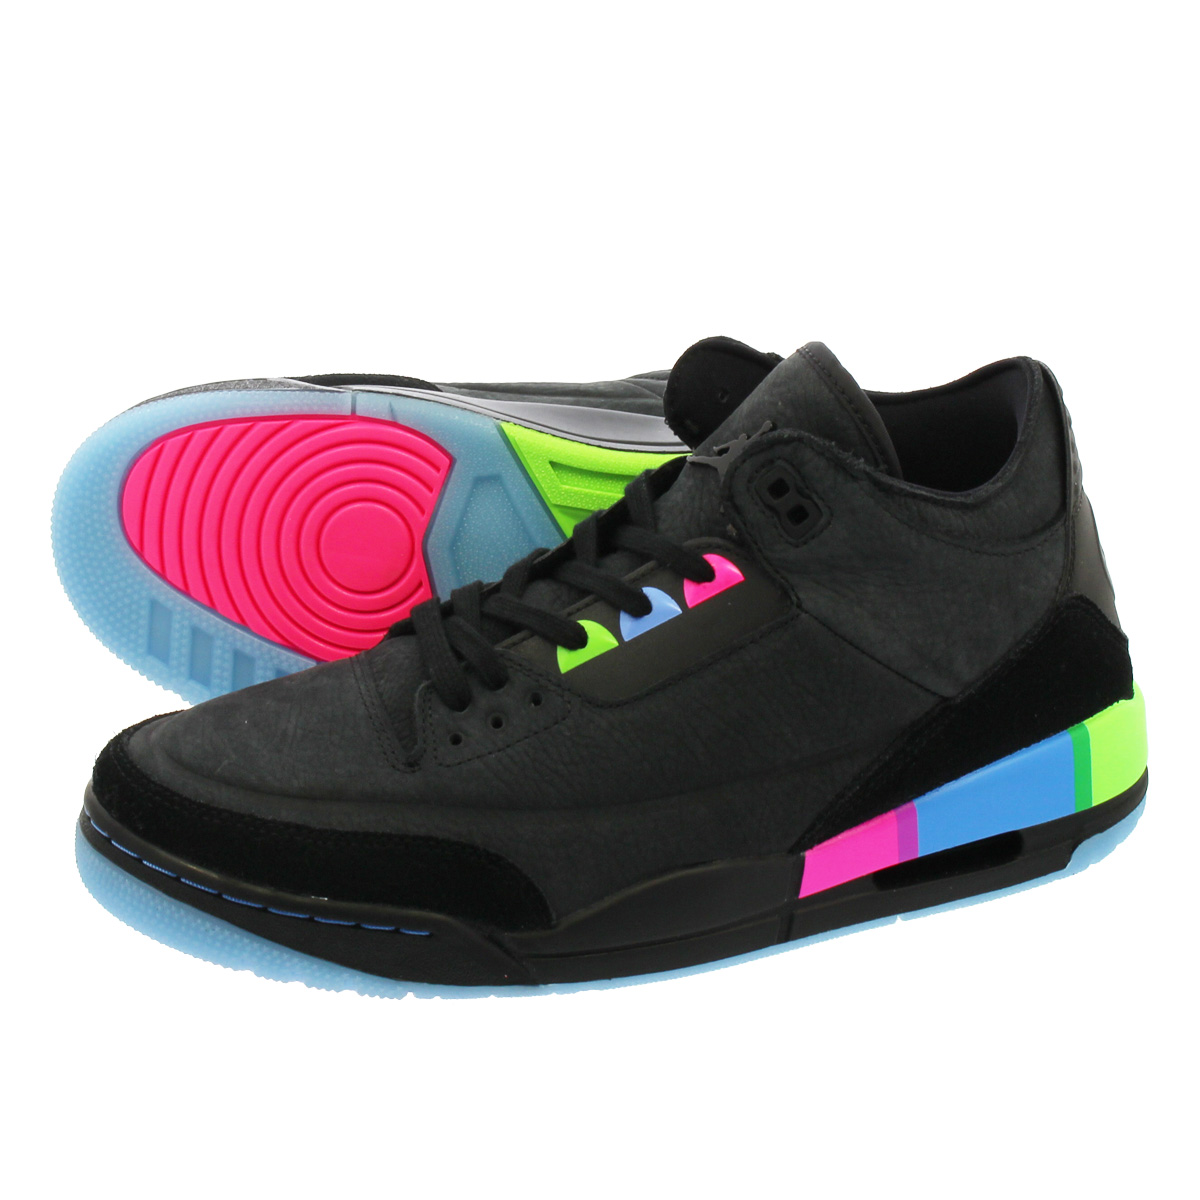 c93f975f8e5 NIKE AIR JORDAN 3 RETRO Nike Air Jordan 3 nostalgic BLACK/ELECTRIC GREEN  at9195-001